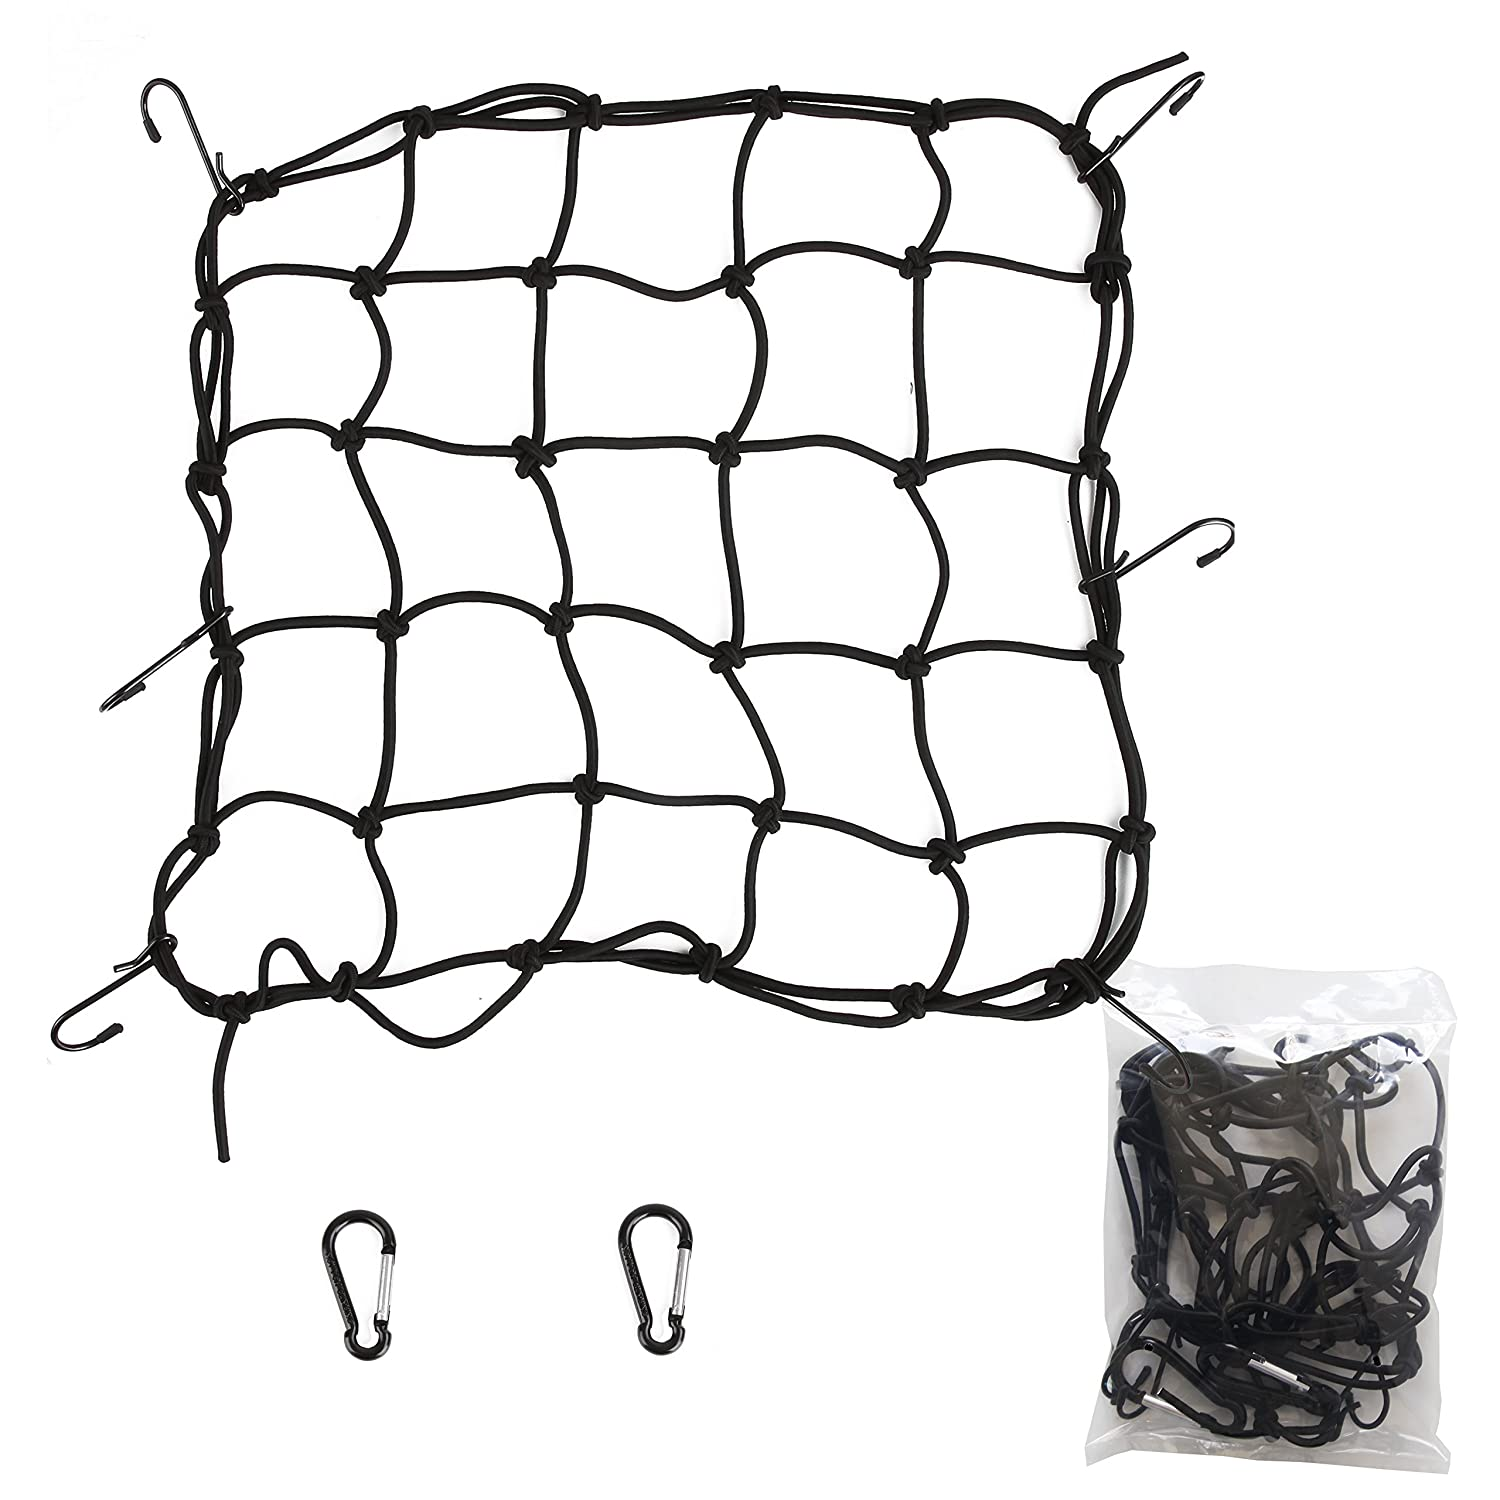 with Canopy Ties /& Bonus Cargo Net and carabiner Plastic Coated Metal Hooks FINNKARE Premium Quality Bungee Cord Assortment in portable bag- 24 Piece Set 100/% latex bungee core